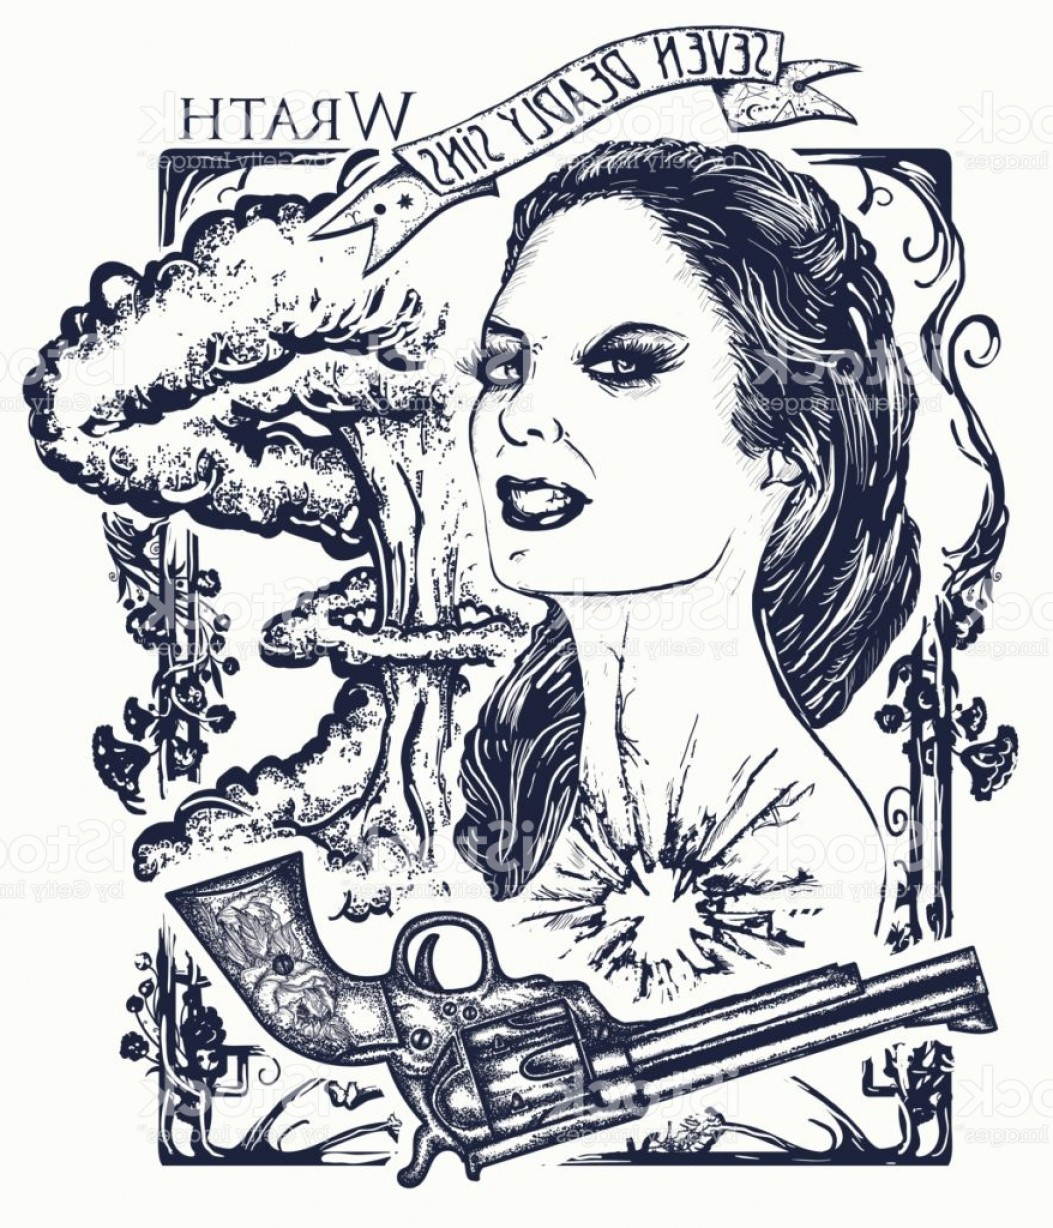 Cute But Deadly Vector: Wrath Seven Deadly Sins Tattoo And T Shirt Design Angry Woman Symbol Of Rage Hatred Gm